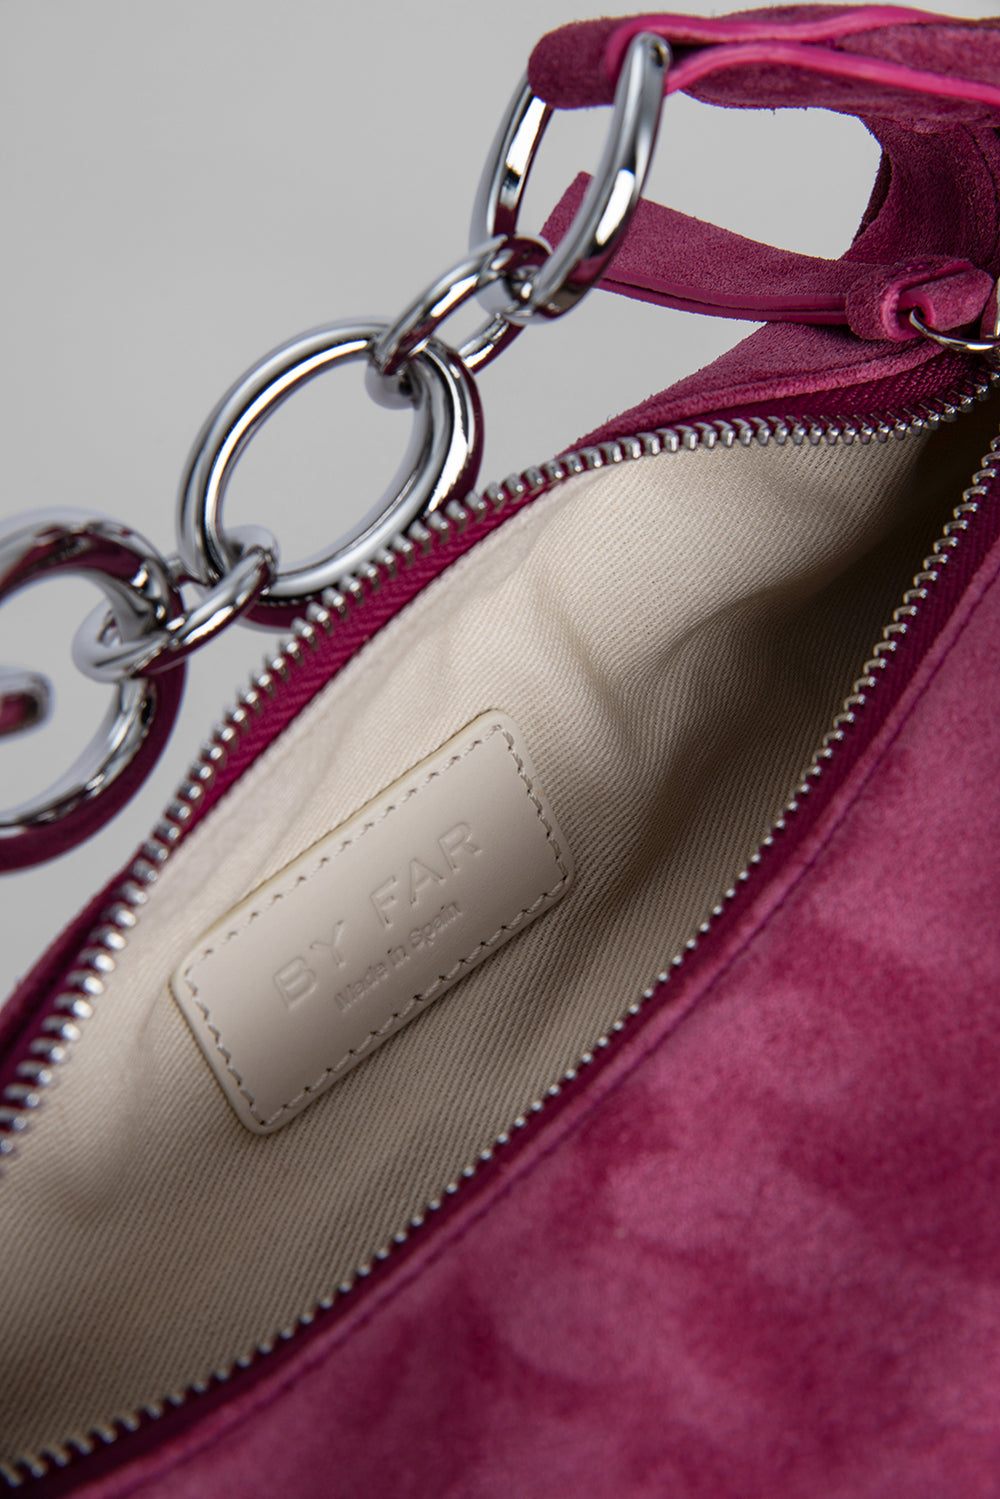 Bougie Fuchsia and Dark Brown Suede Leather